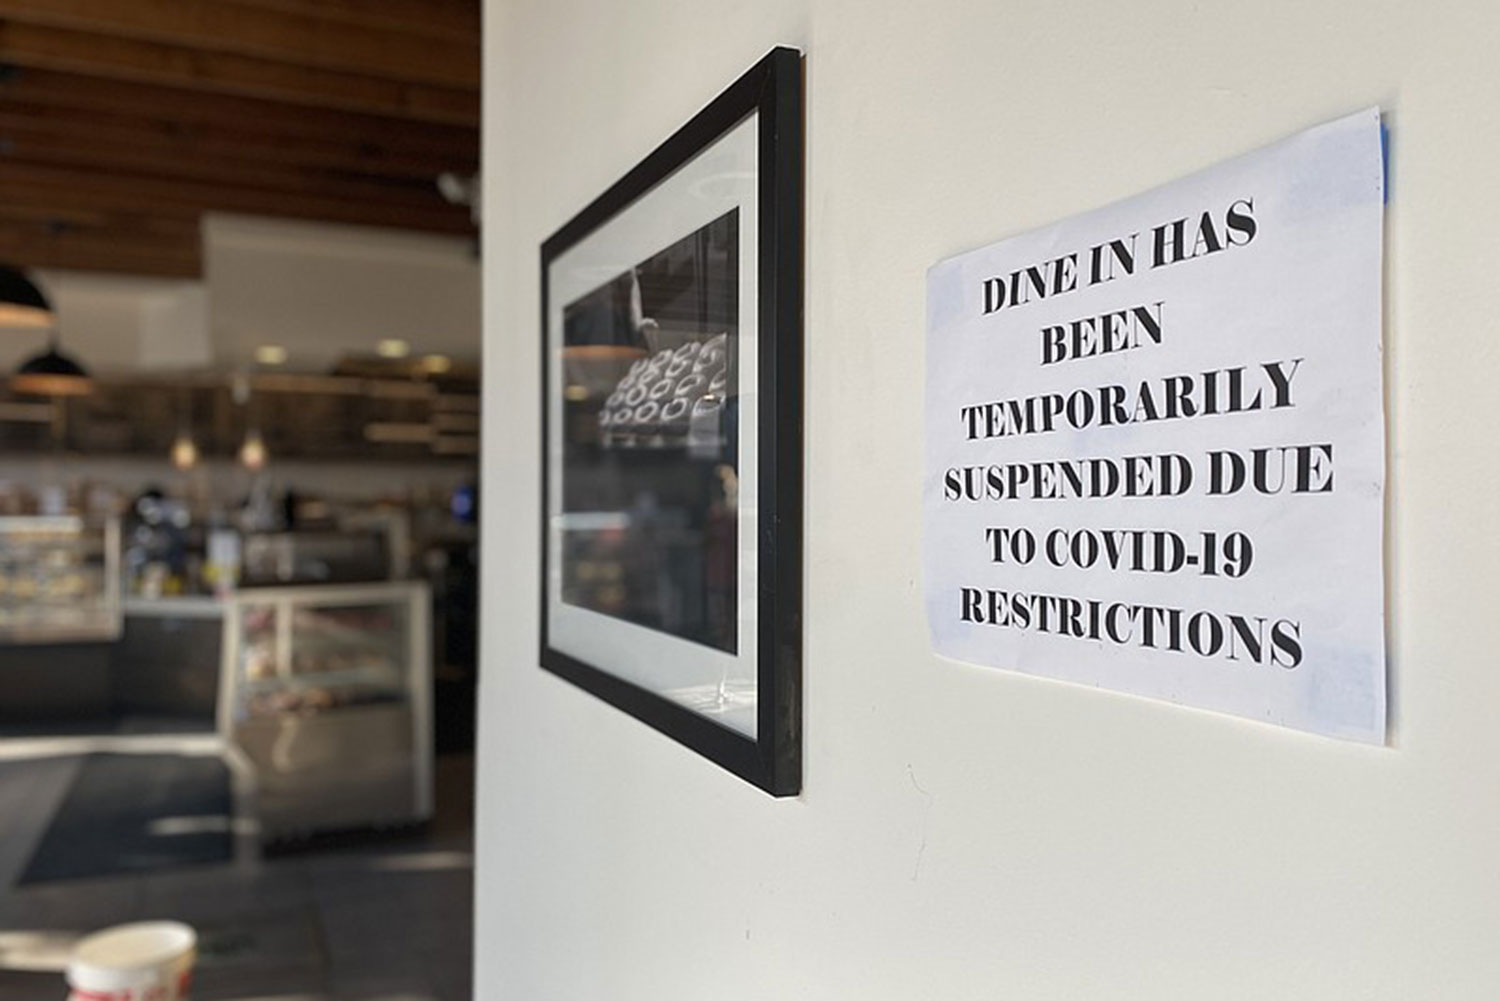 A sign notifying customers dine-in has been temporarily suspended because of the coronavirus pandemic at Solomon Bagels & Donuts in North Park. Oct. 1, 2020